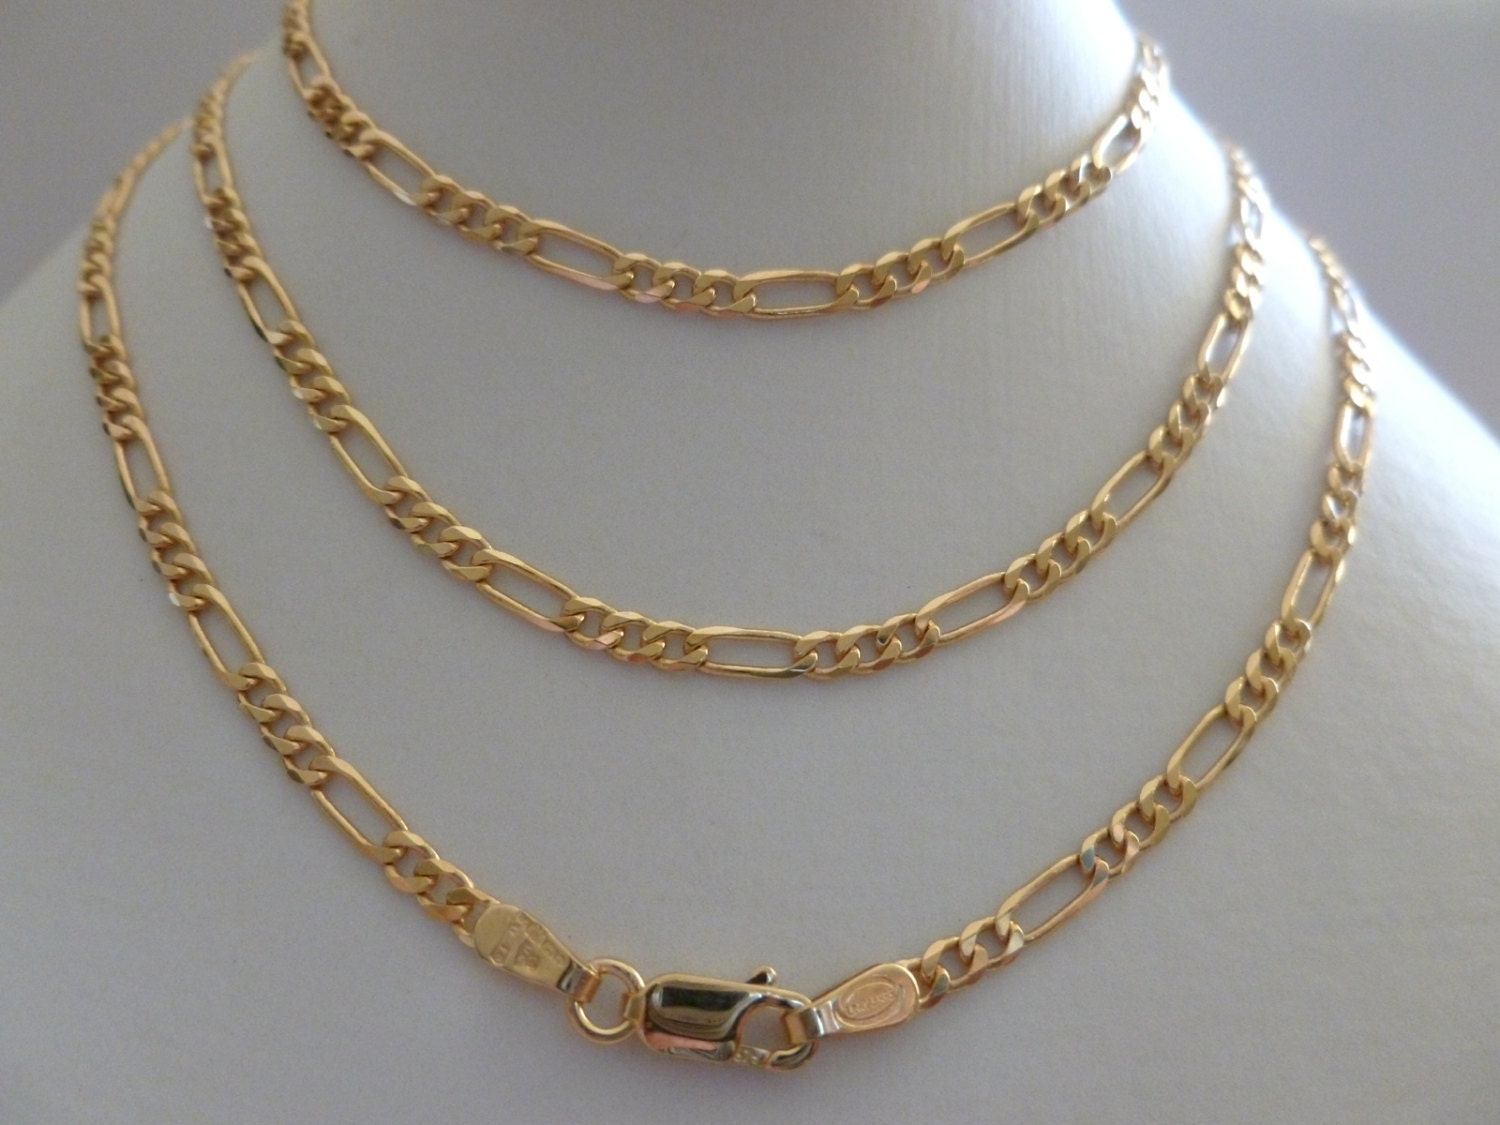 9ct 9k solid yellow gold figaro flat link chain necklace 60cm